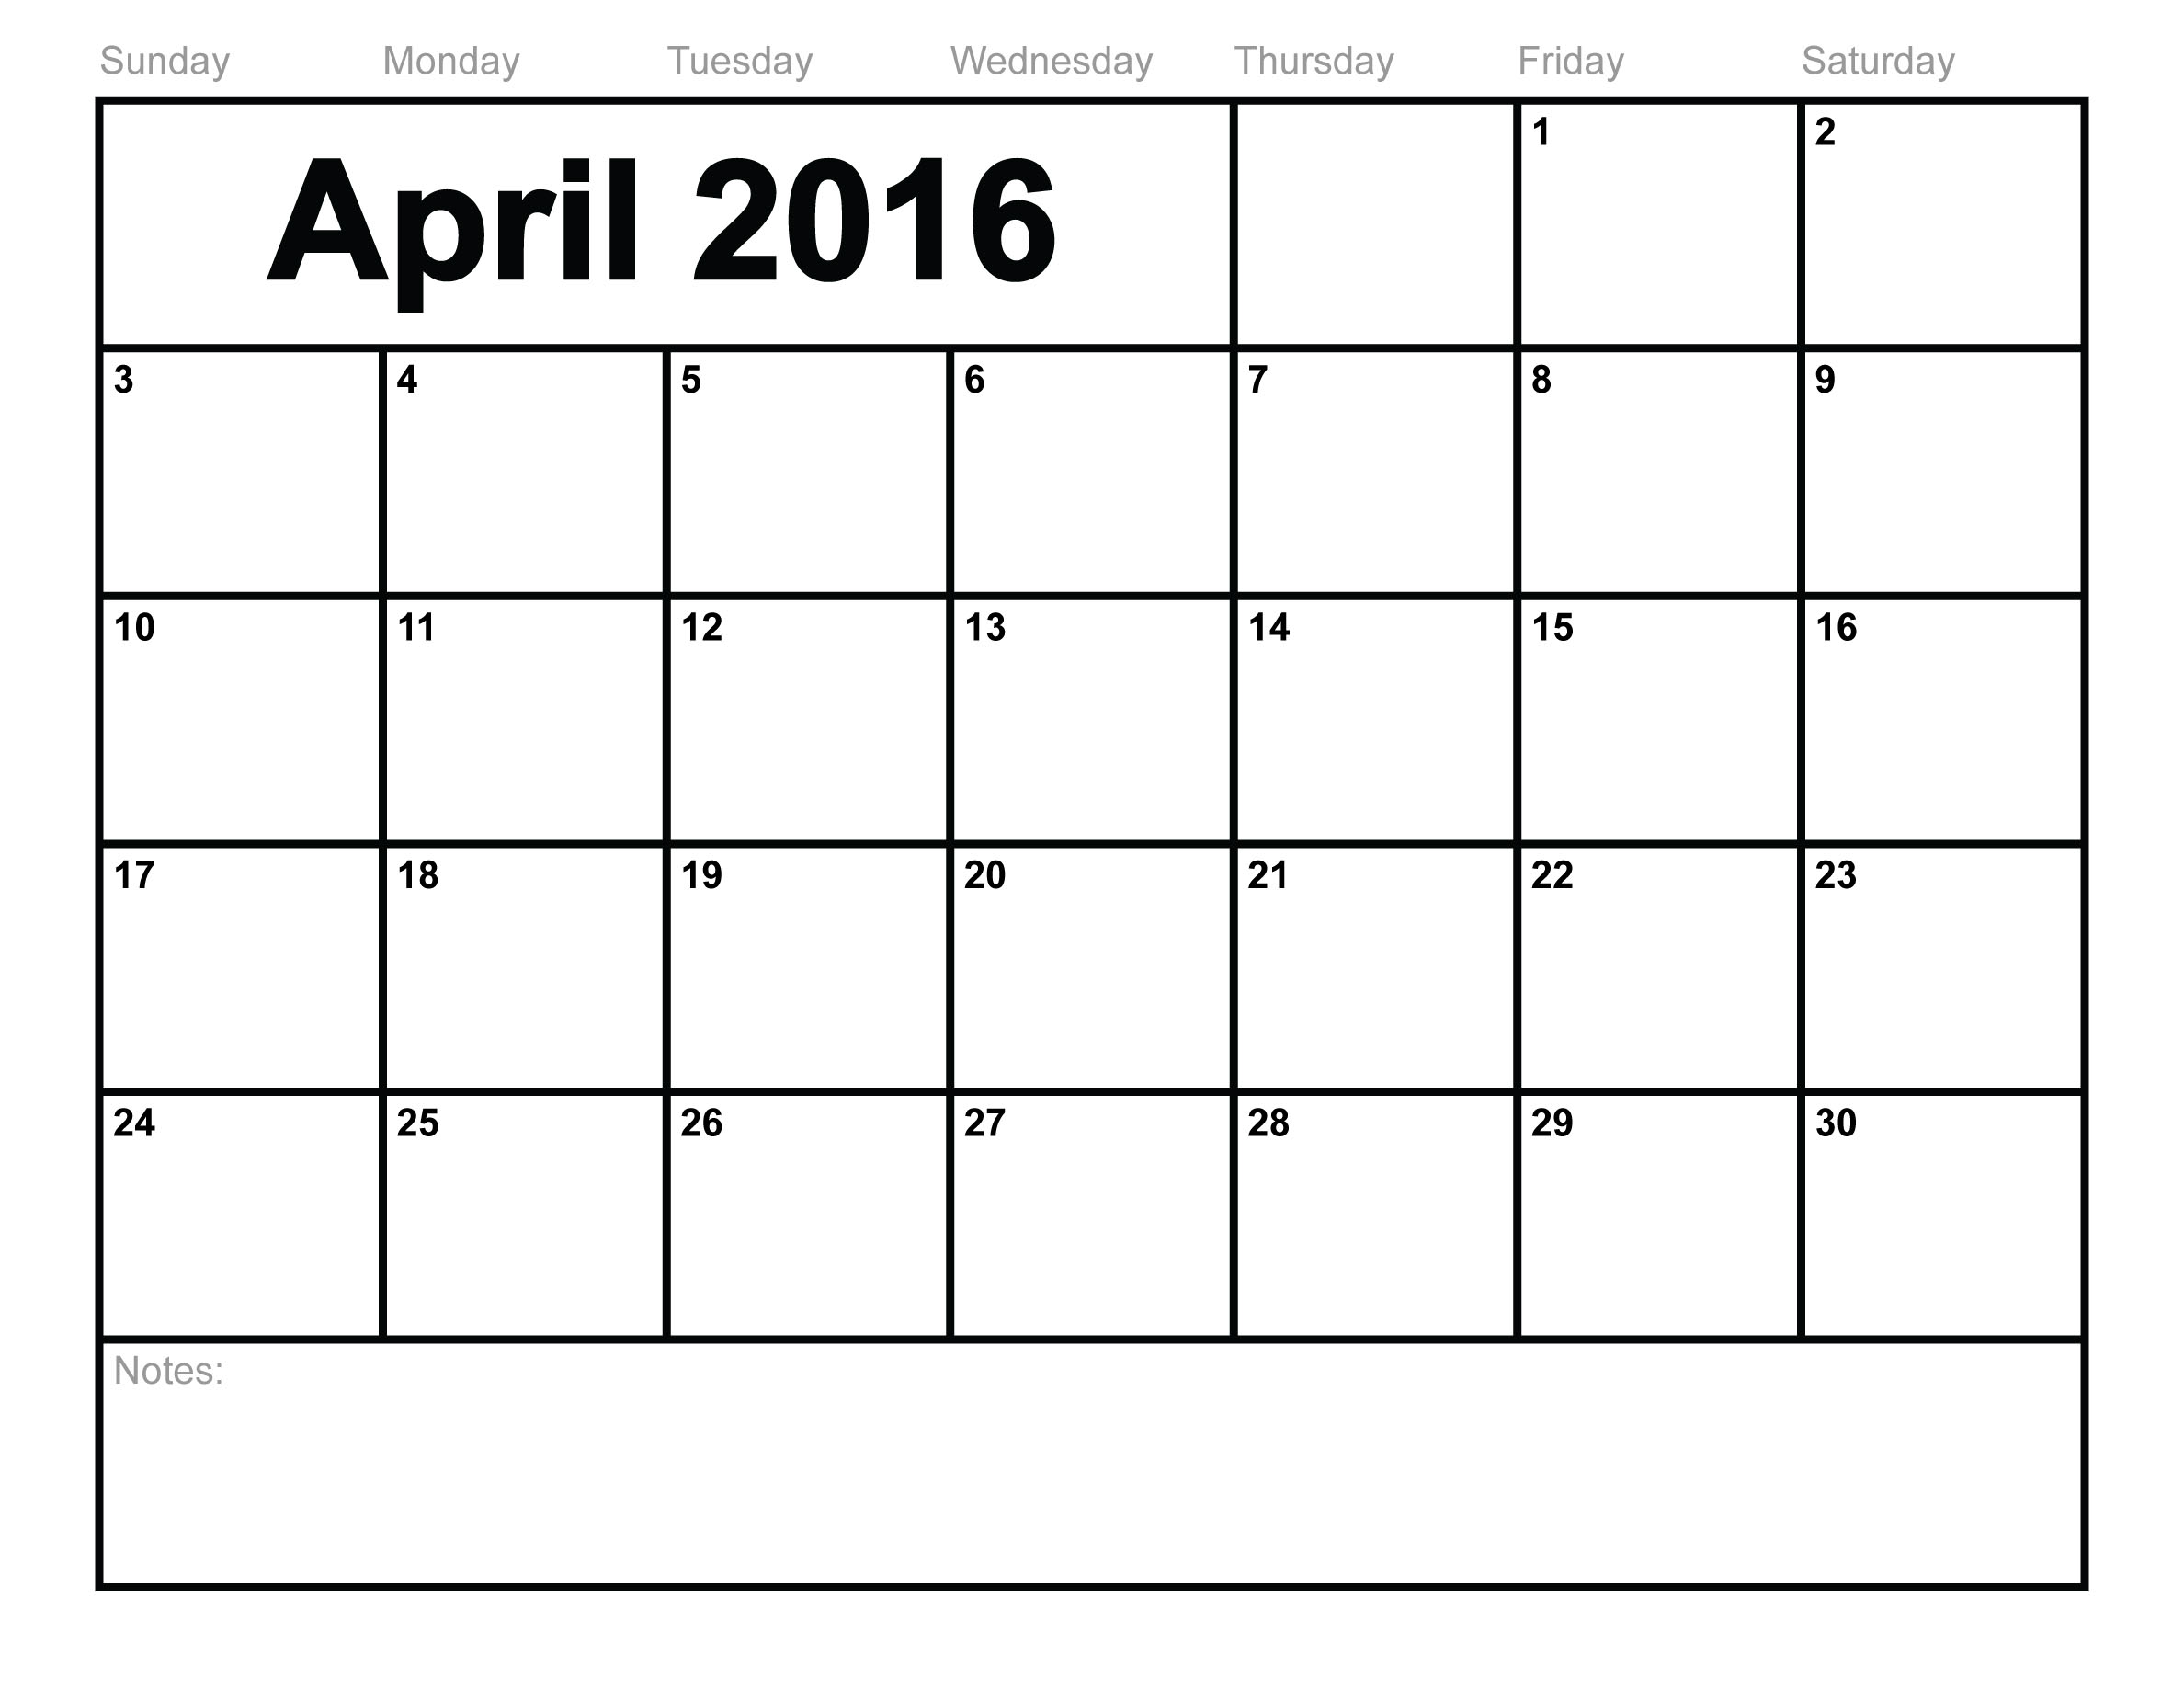 graphic about Apr Calendar Printable titled April 2016 Calendar Template - No cost Down load